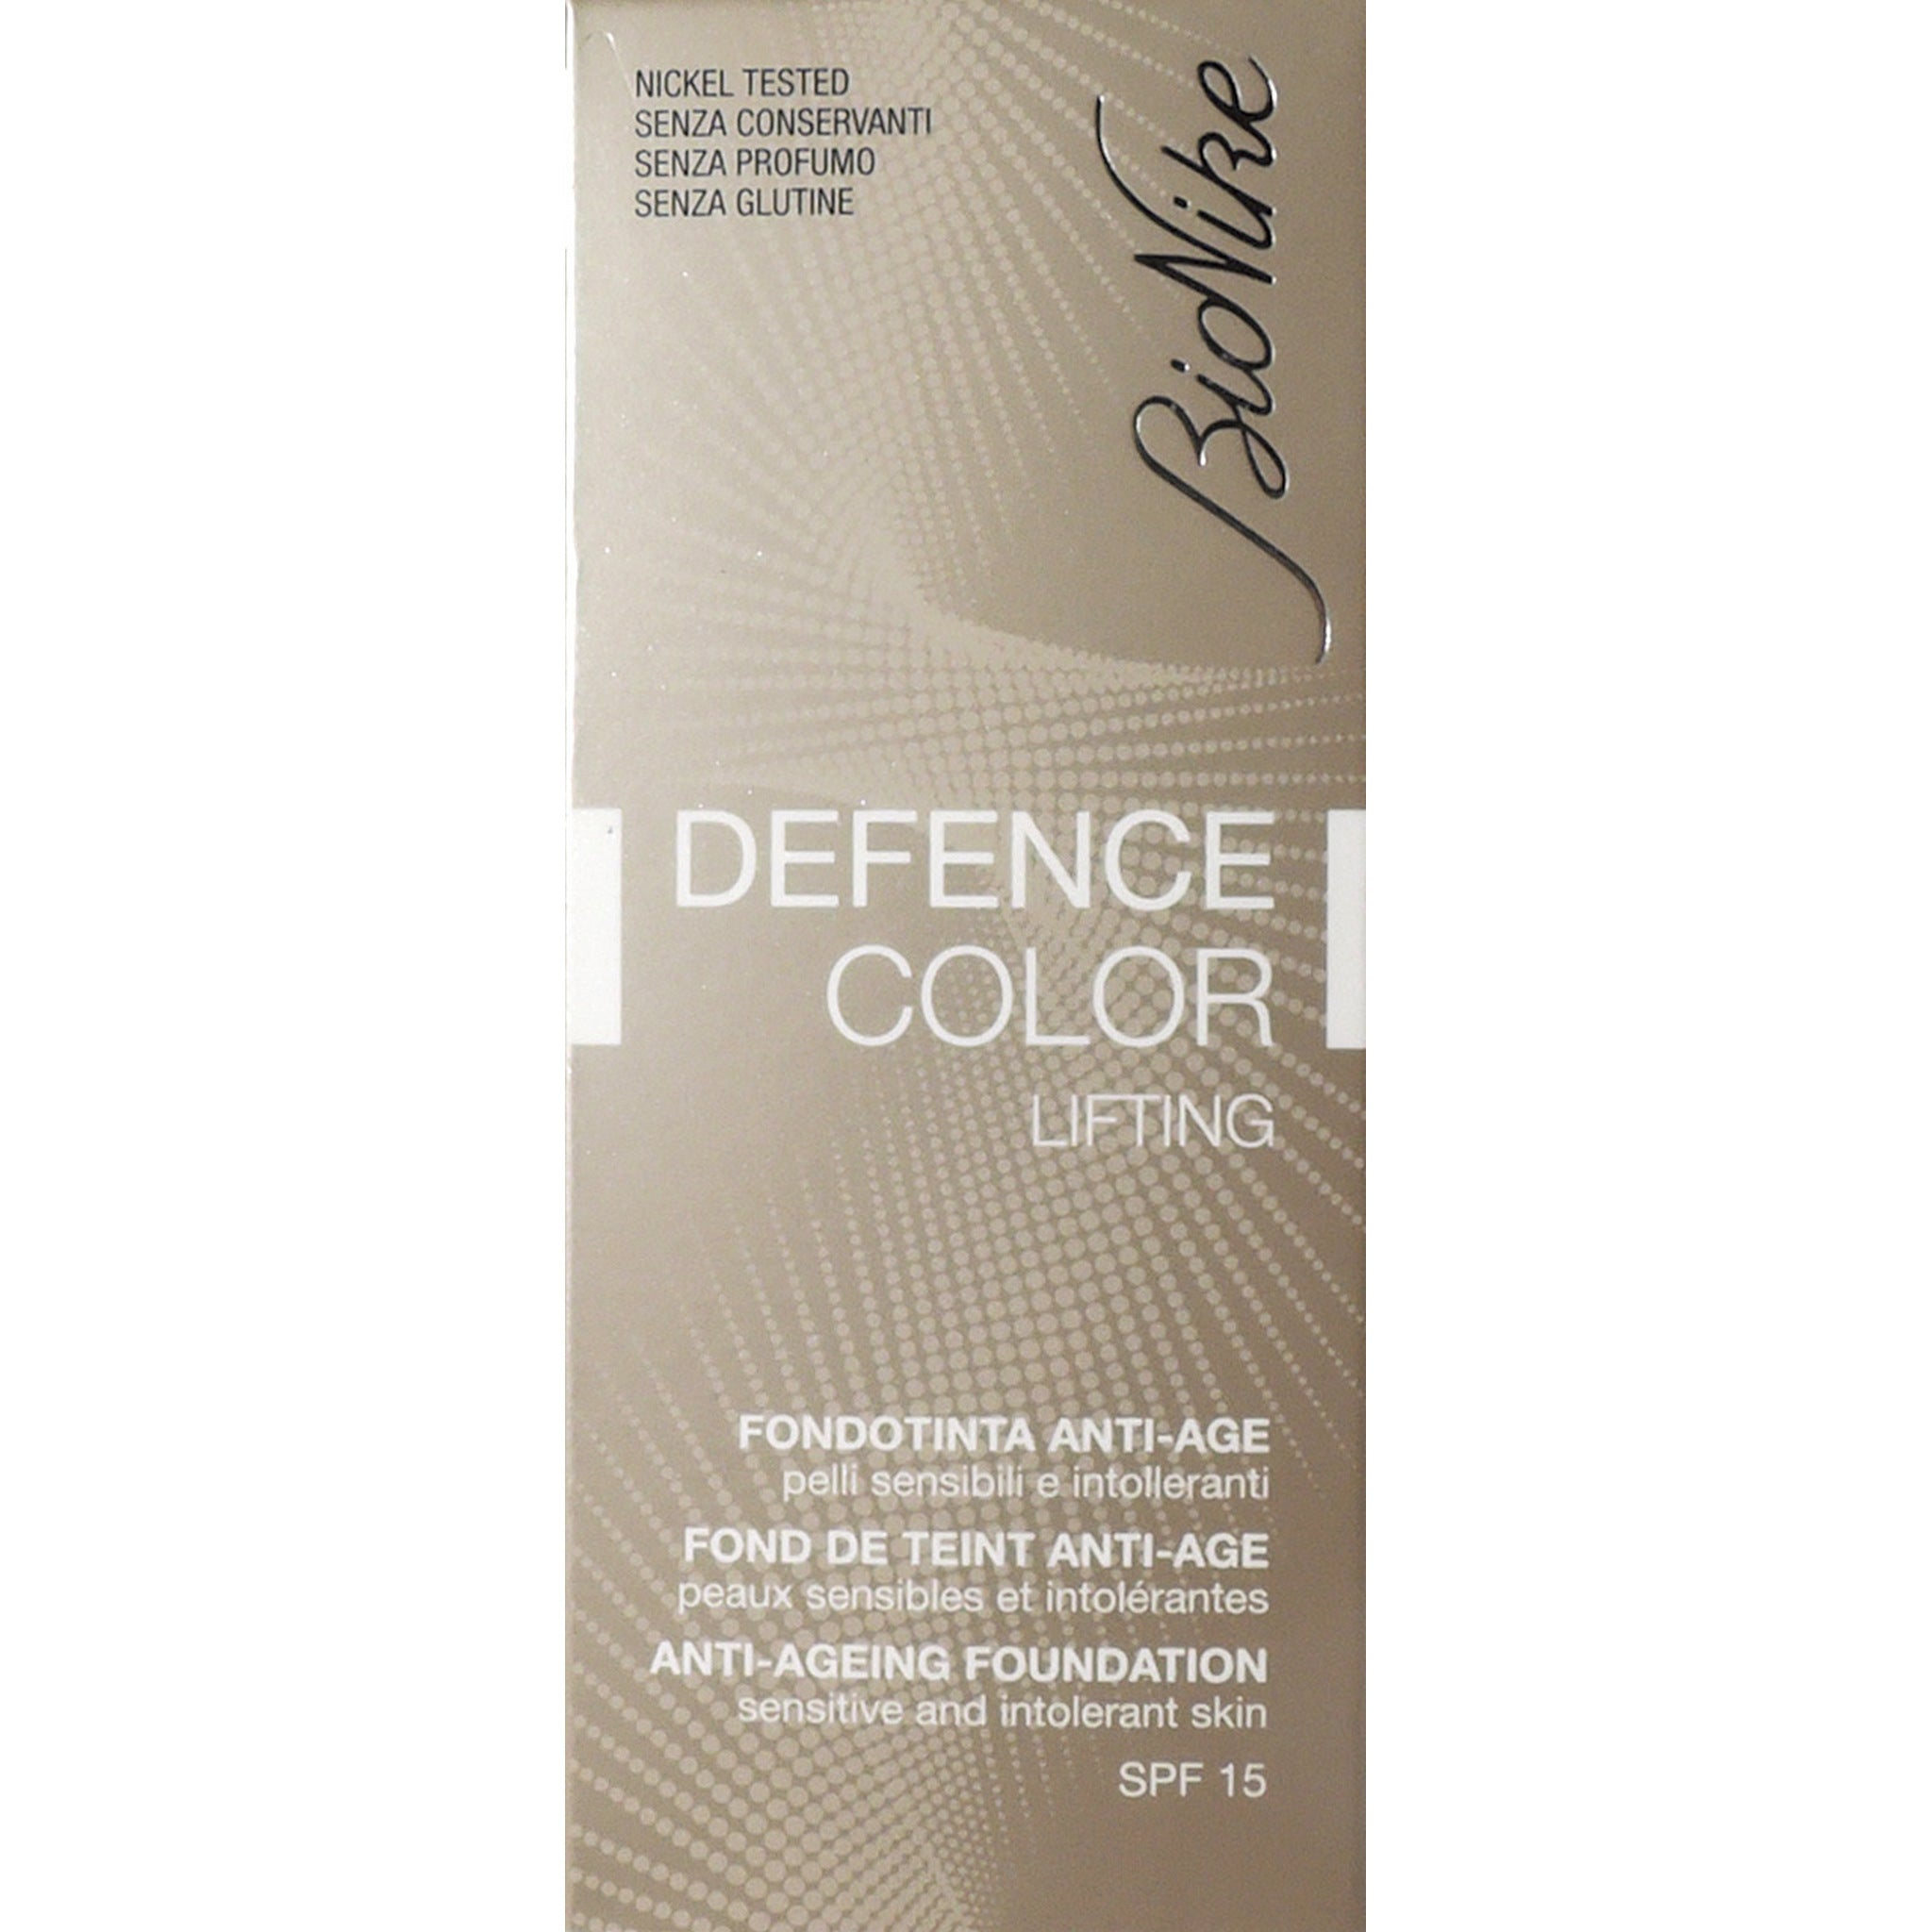 DEFENCE COLOR FONDOTINTA LIFTING 203